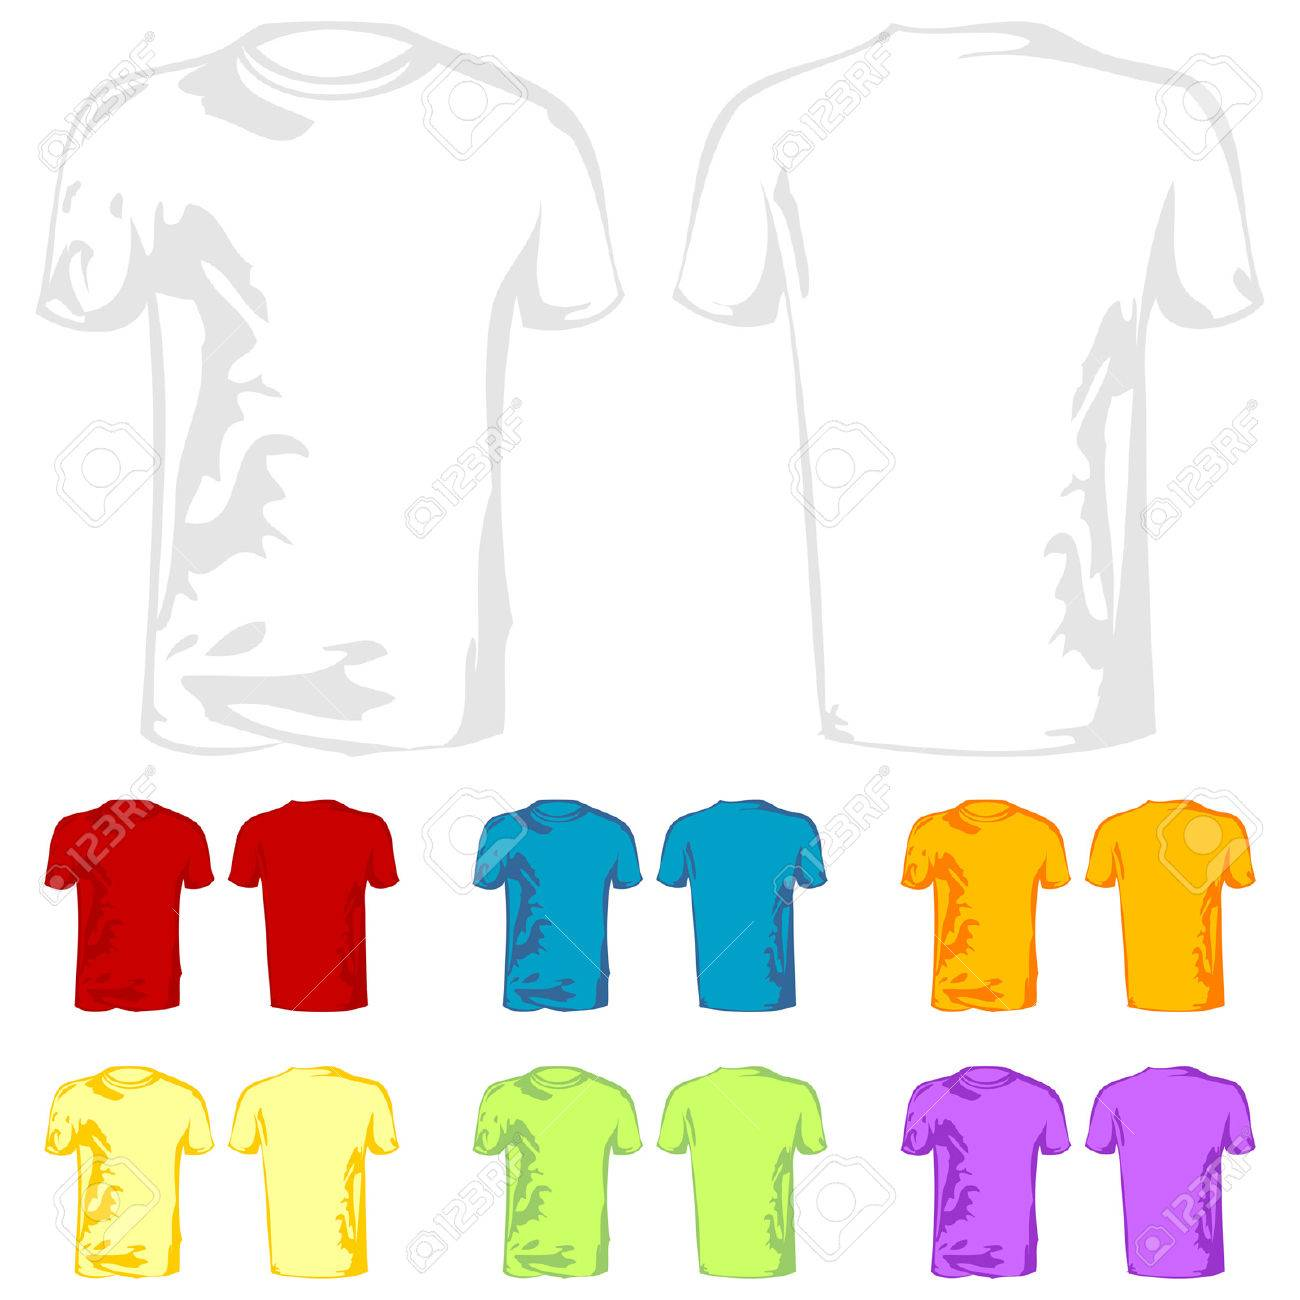 Design t shirt template free - T Shirt Templates With Different Color Samples Over White Royalty